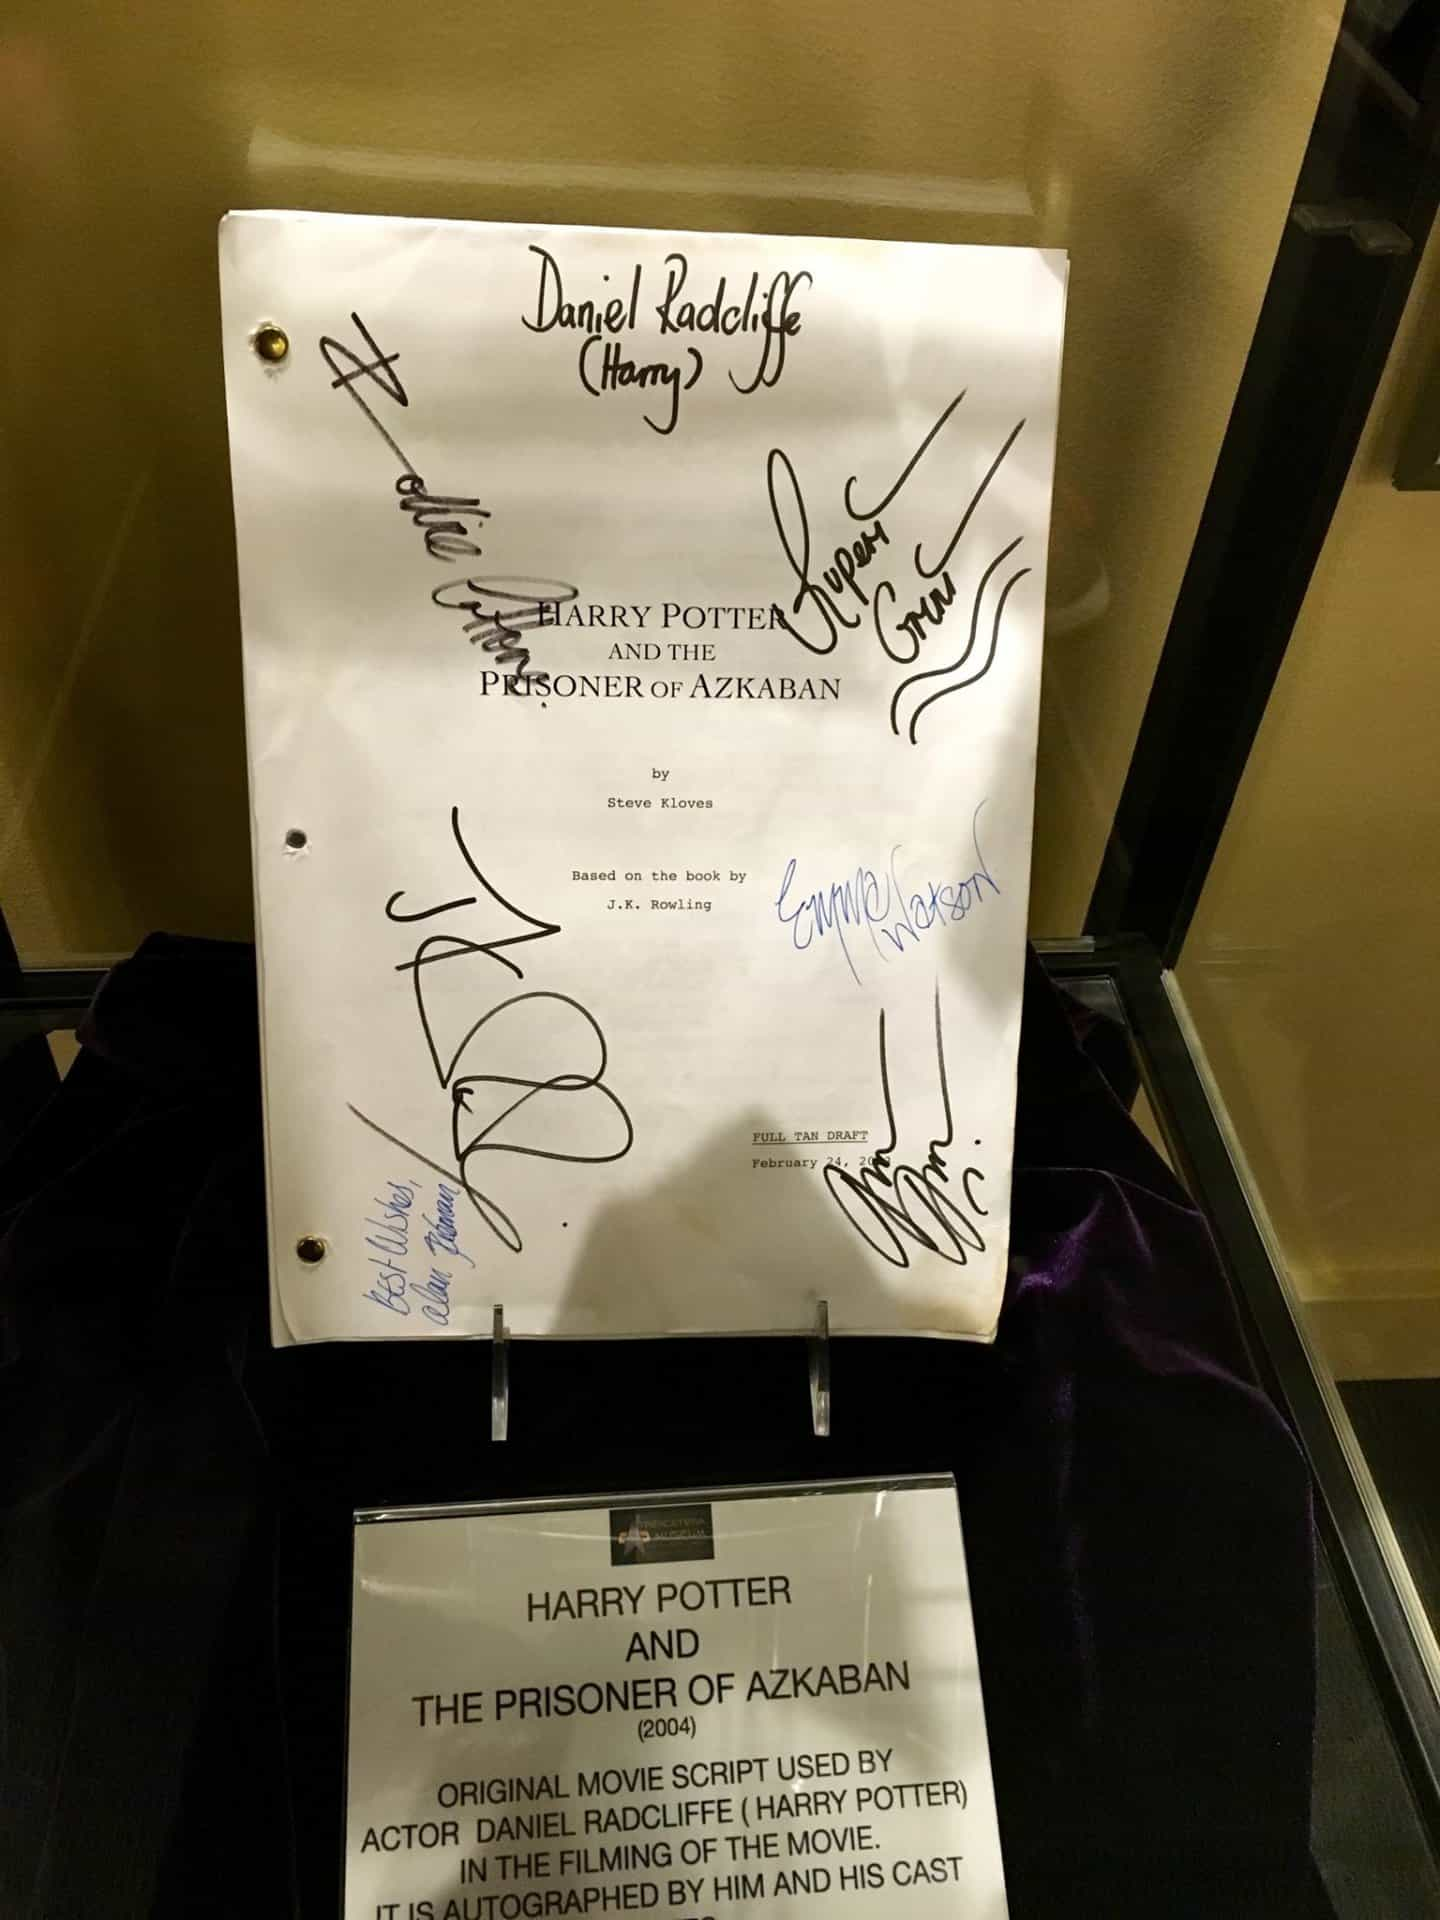 Autographed Harry Potter Script sits propped up in a glass case.